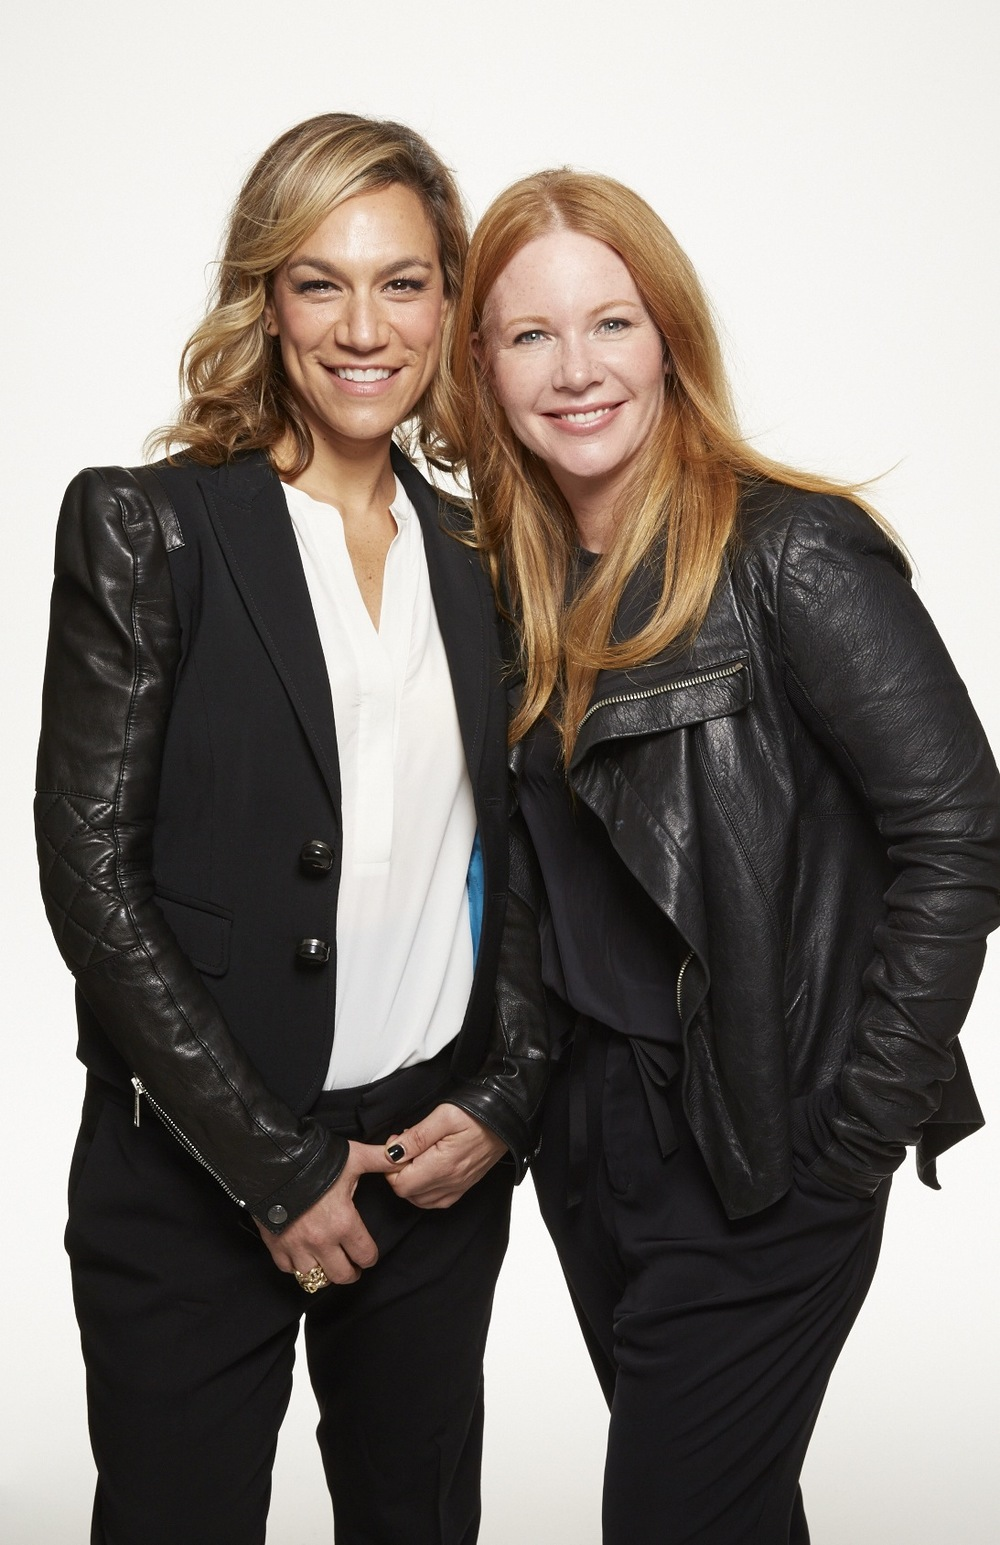 Julie Rice, left, and Elizabeth Cutler, right. Co-Founders, SoulCycle.